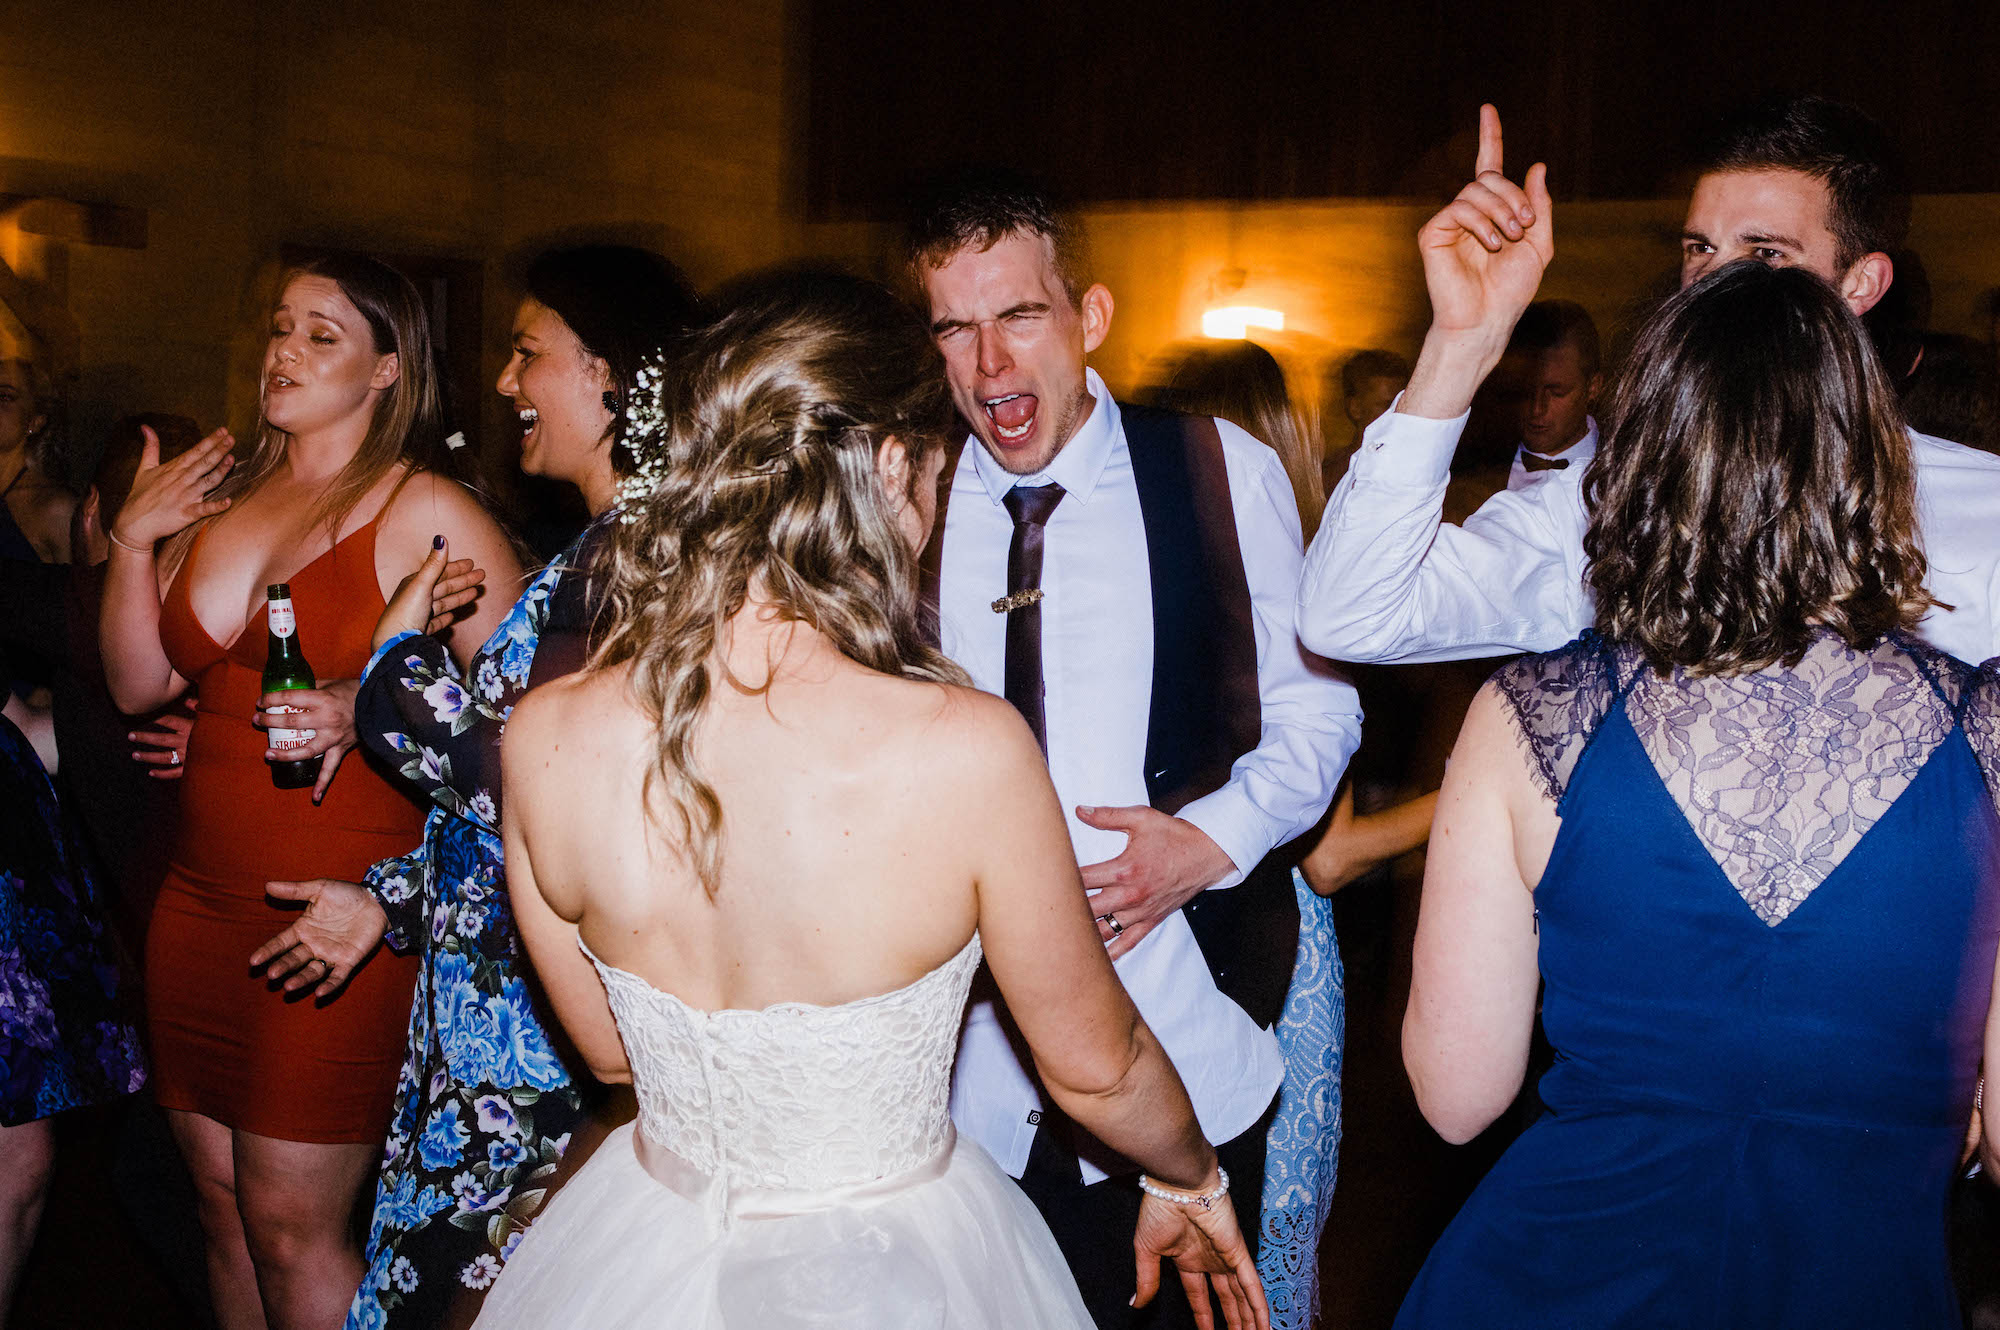 The bride & the groom dance at their Quarry Farm wedding reception